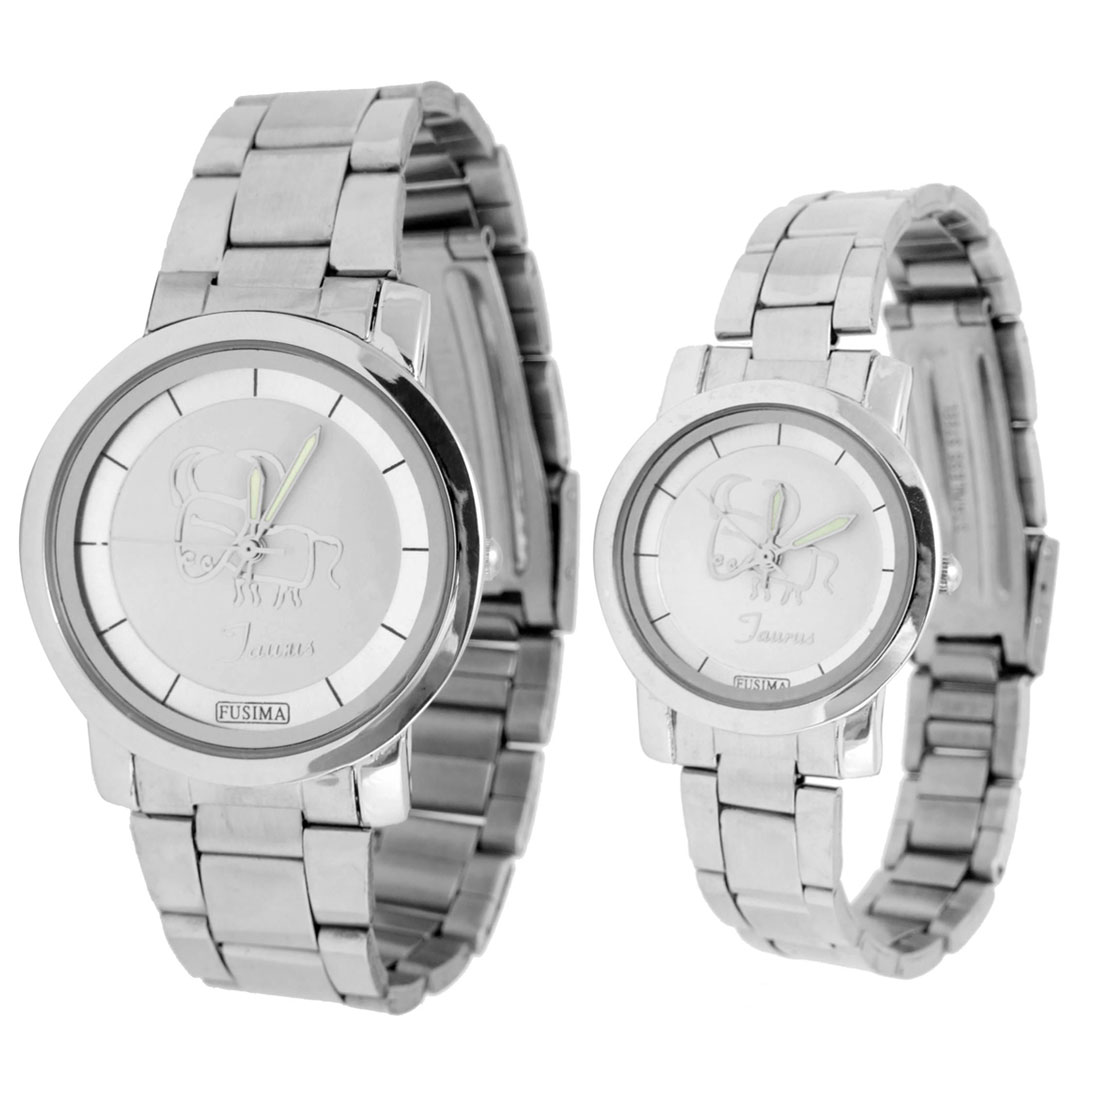 Charming One Pair of Fere Wristwatch for Man and Lady